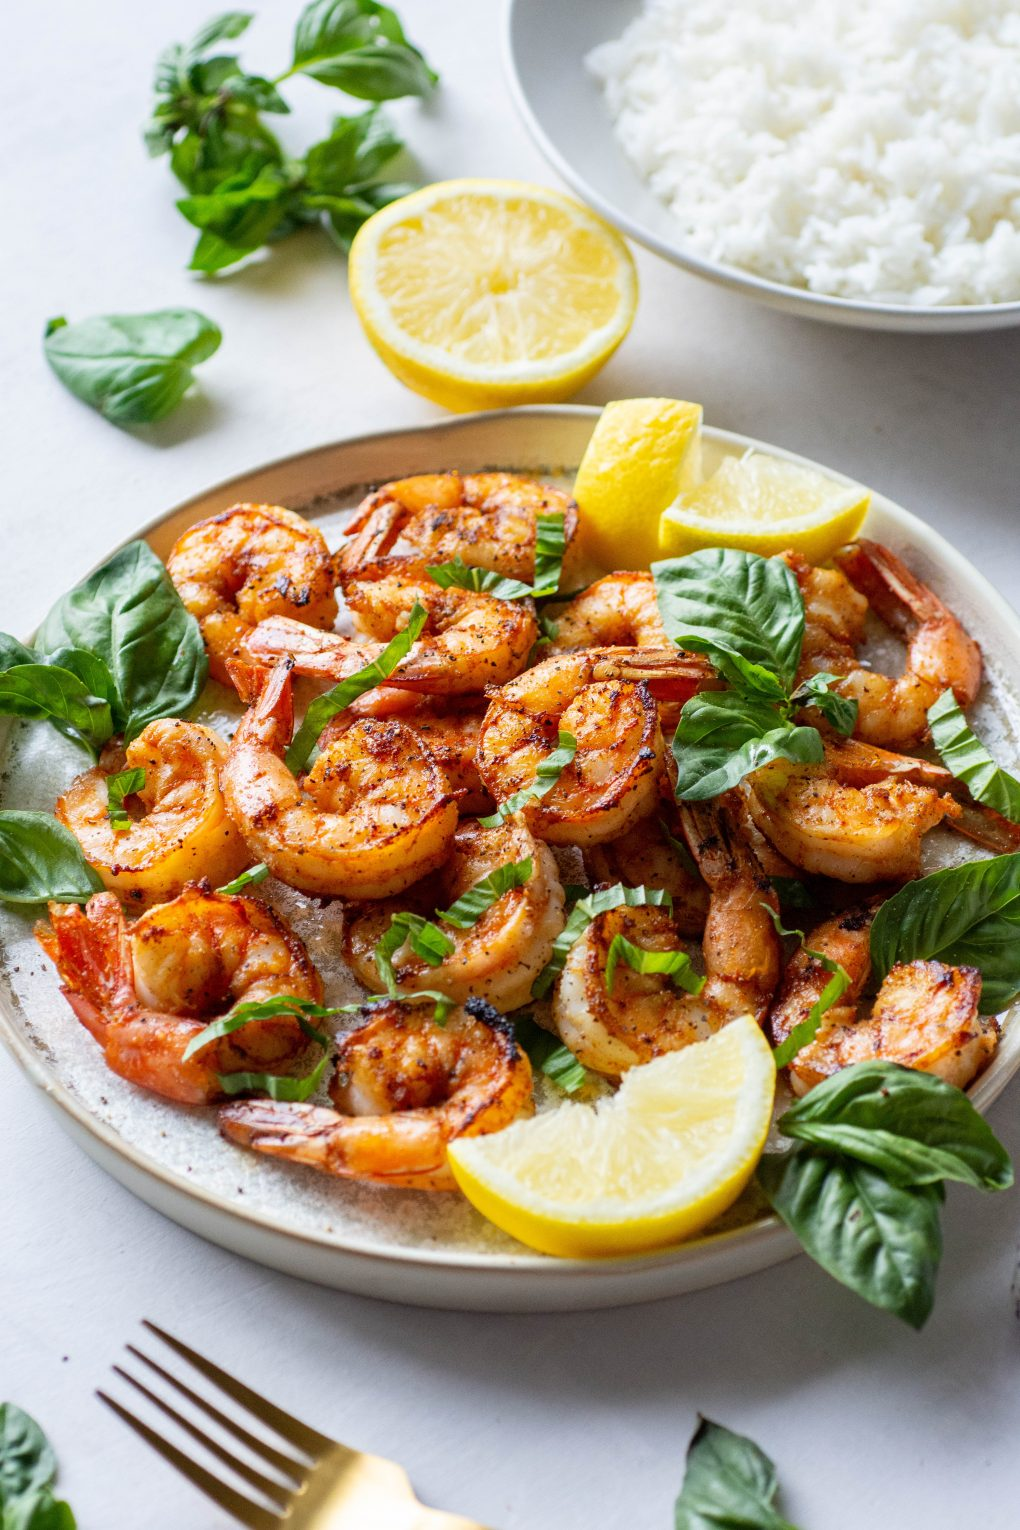 Side angle of a plate of seared shrimp topped with fresh basil and lemon wedges next to a bowl of white rice on a light background